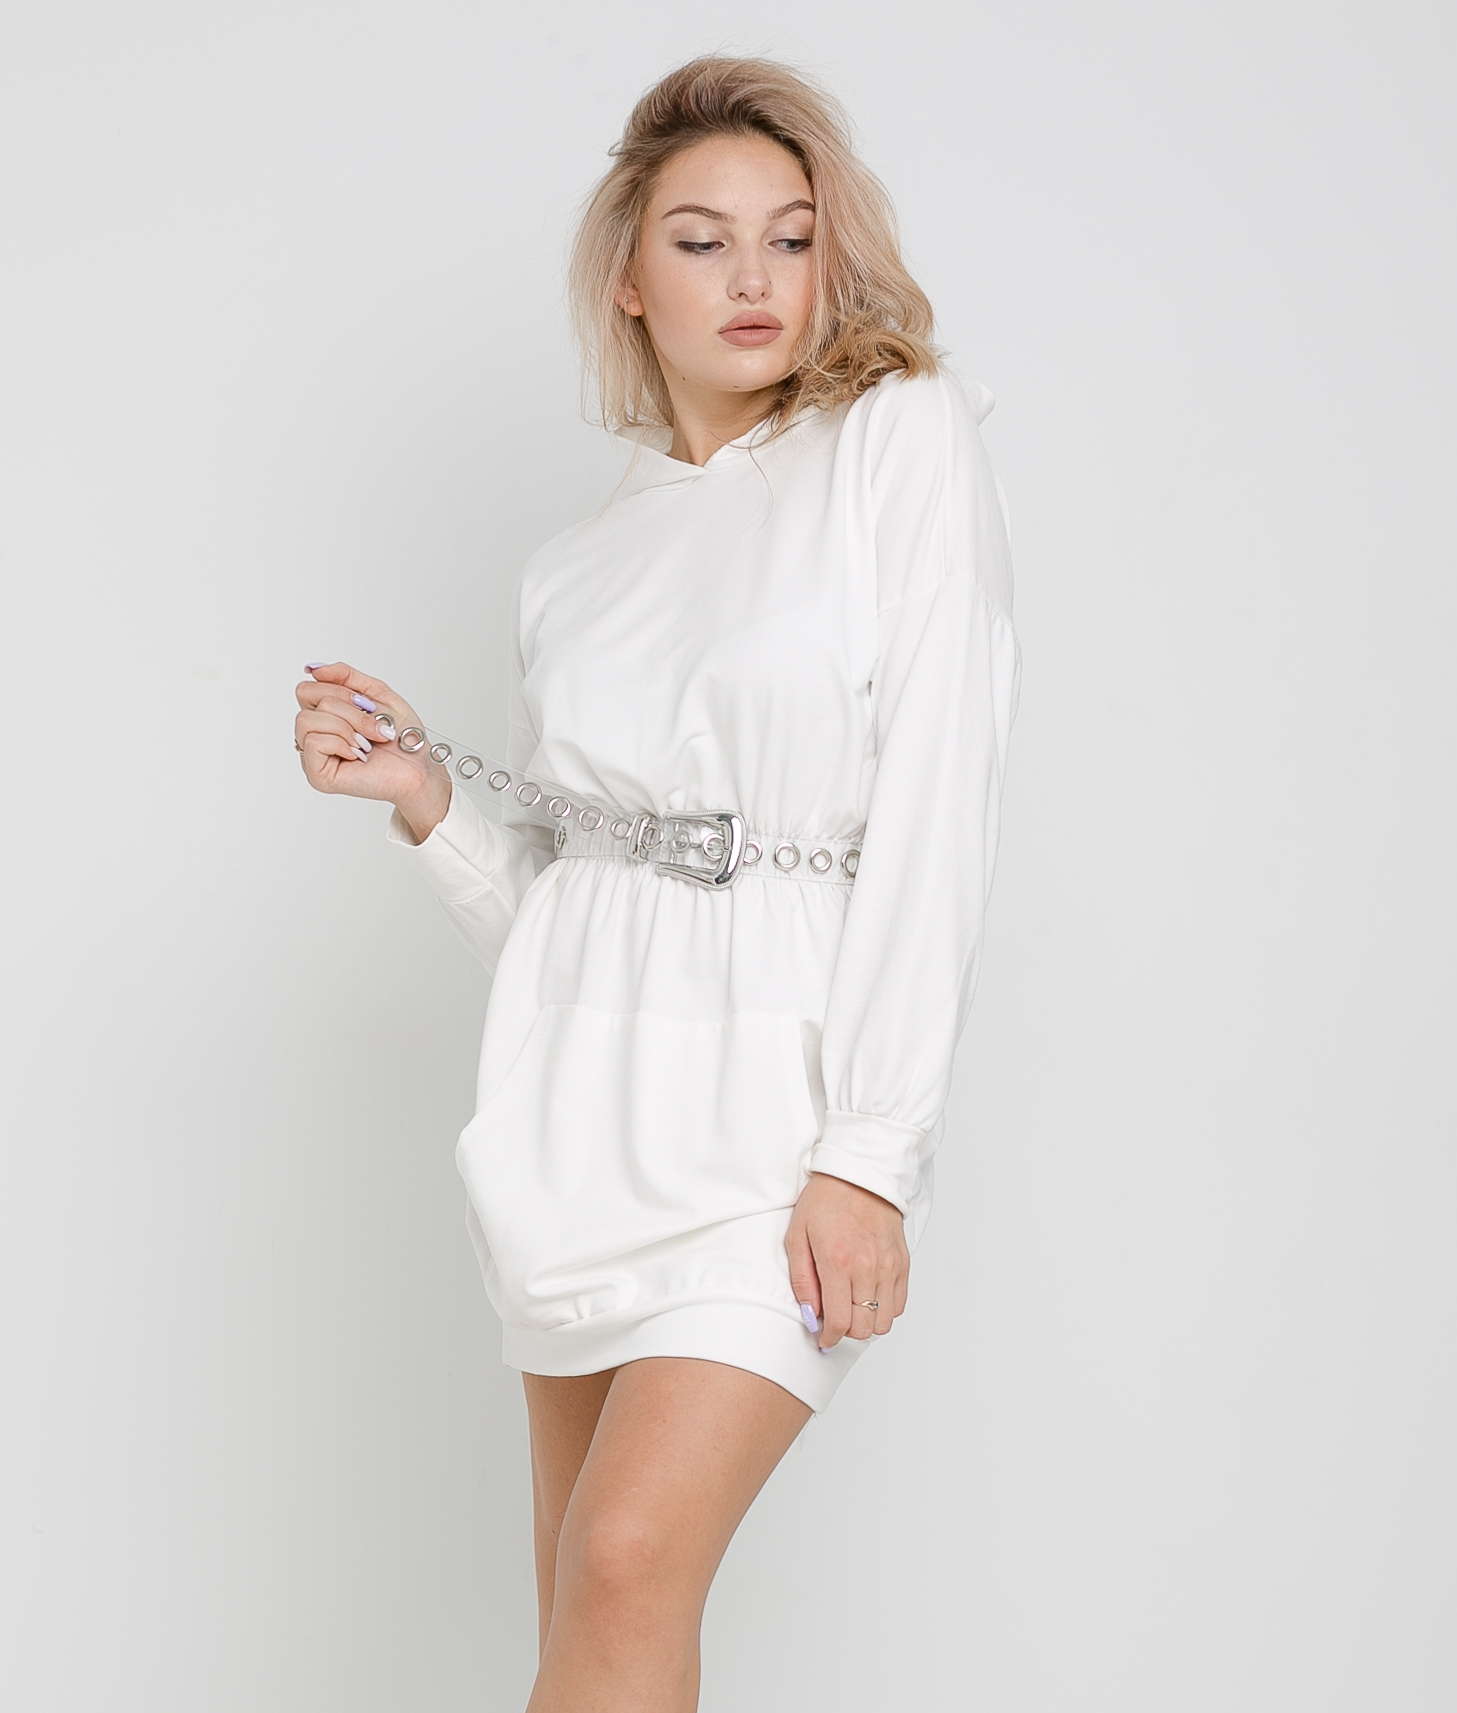 DARILA DRESS - WHITE